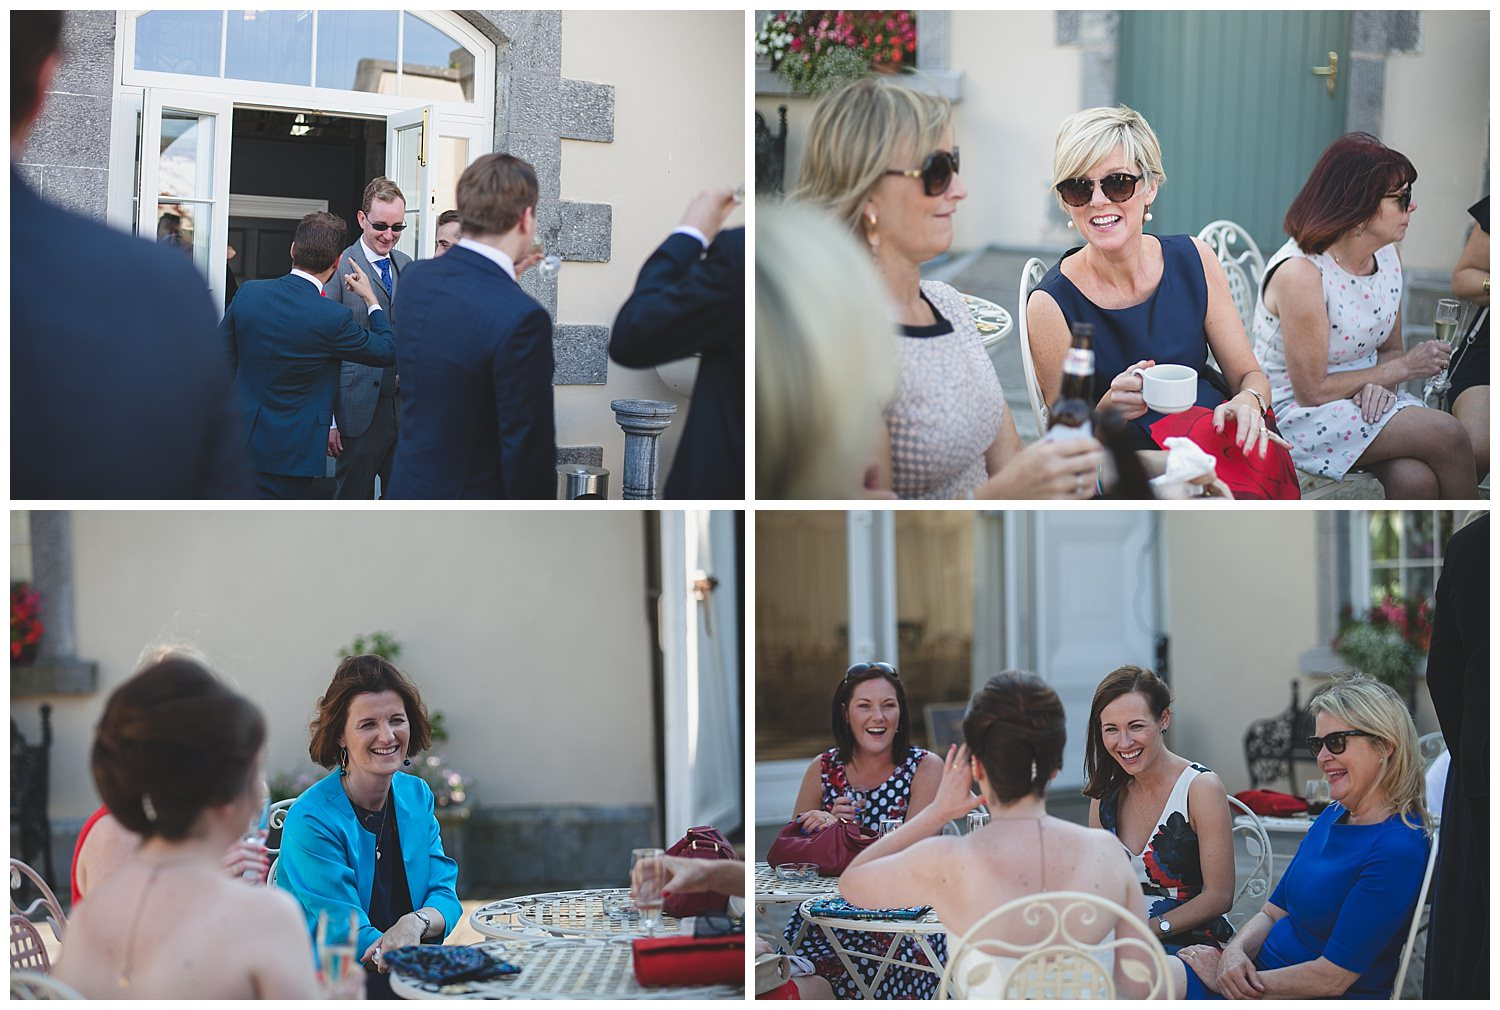 Natural snaps of guests enjoying the drinks reception